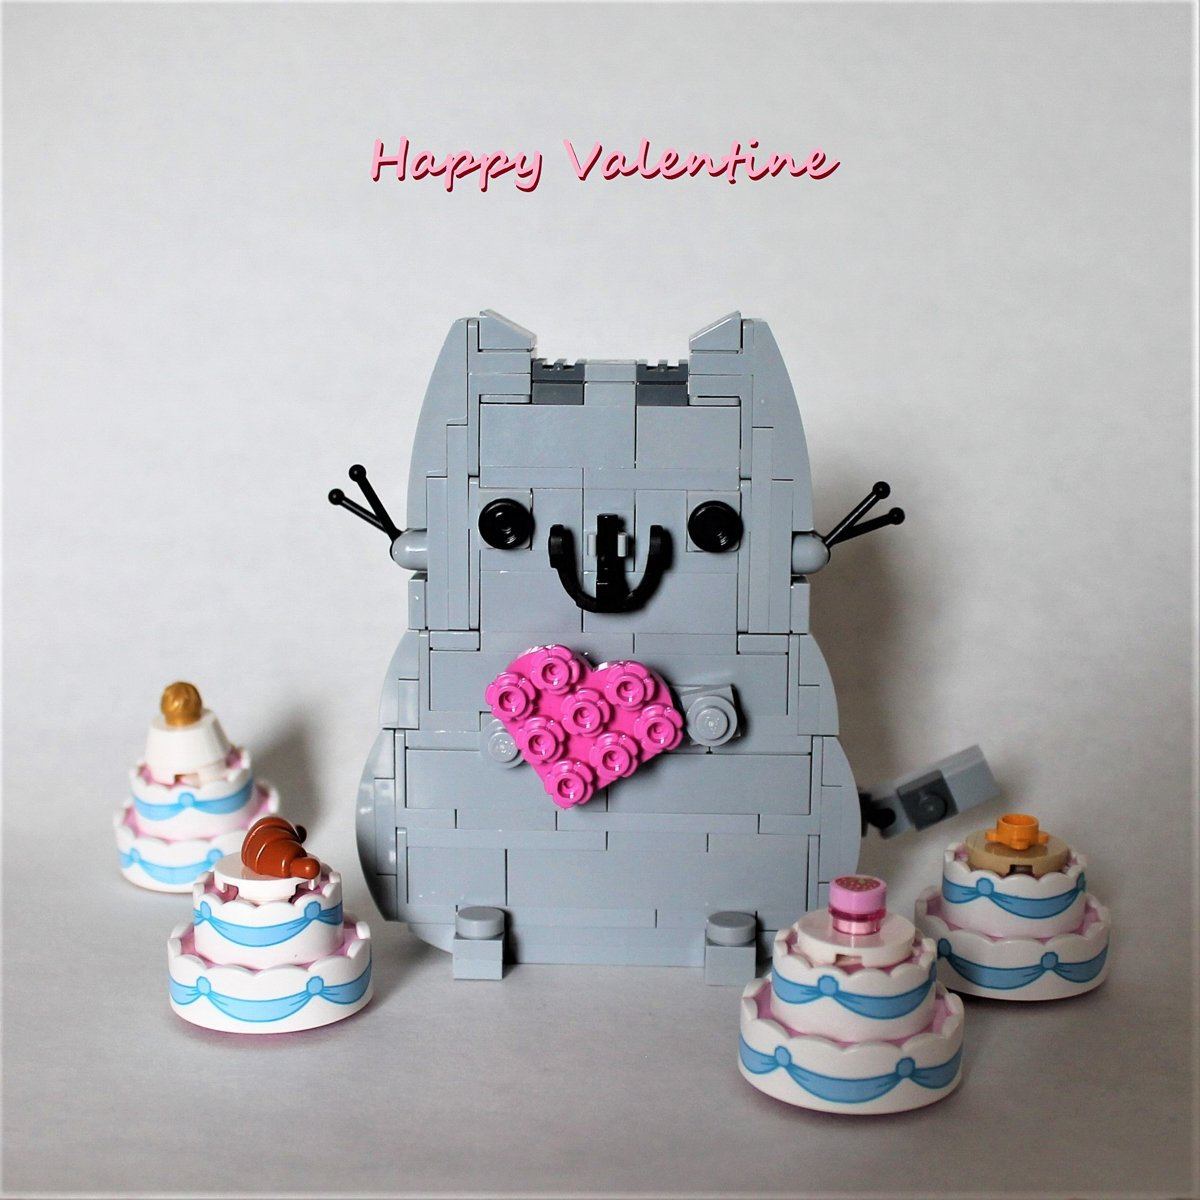 Pusheen Fan art Valentine